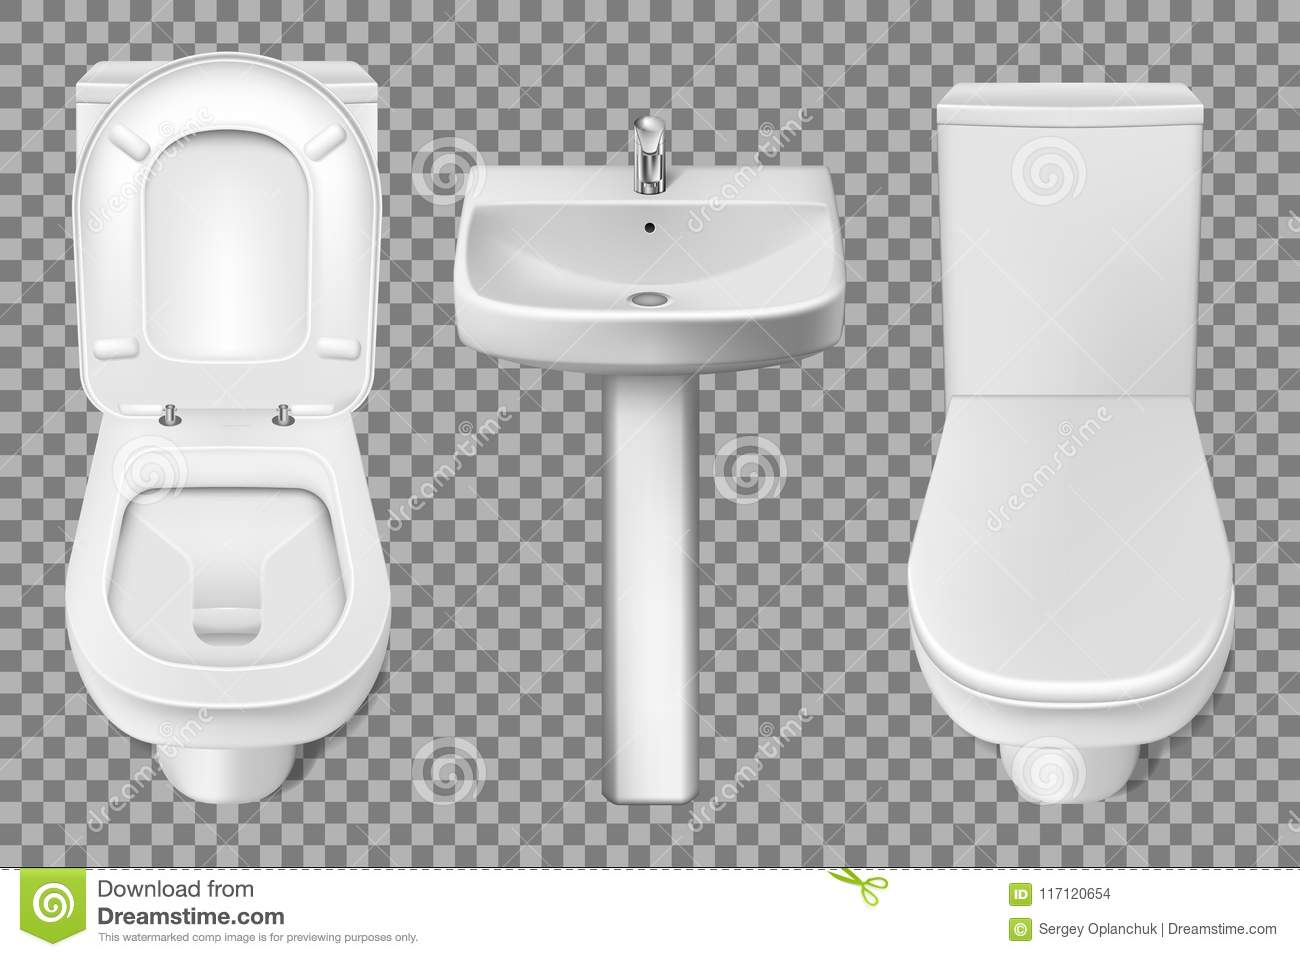 Picture of: Toilet Sink Stock Illustrations 12 458 Toilet Sink Stock Illustrations Vectors Clipart Dreamstime